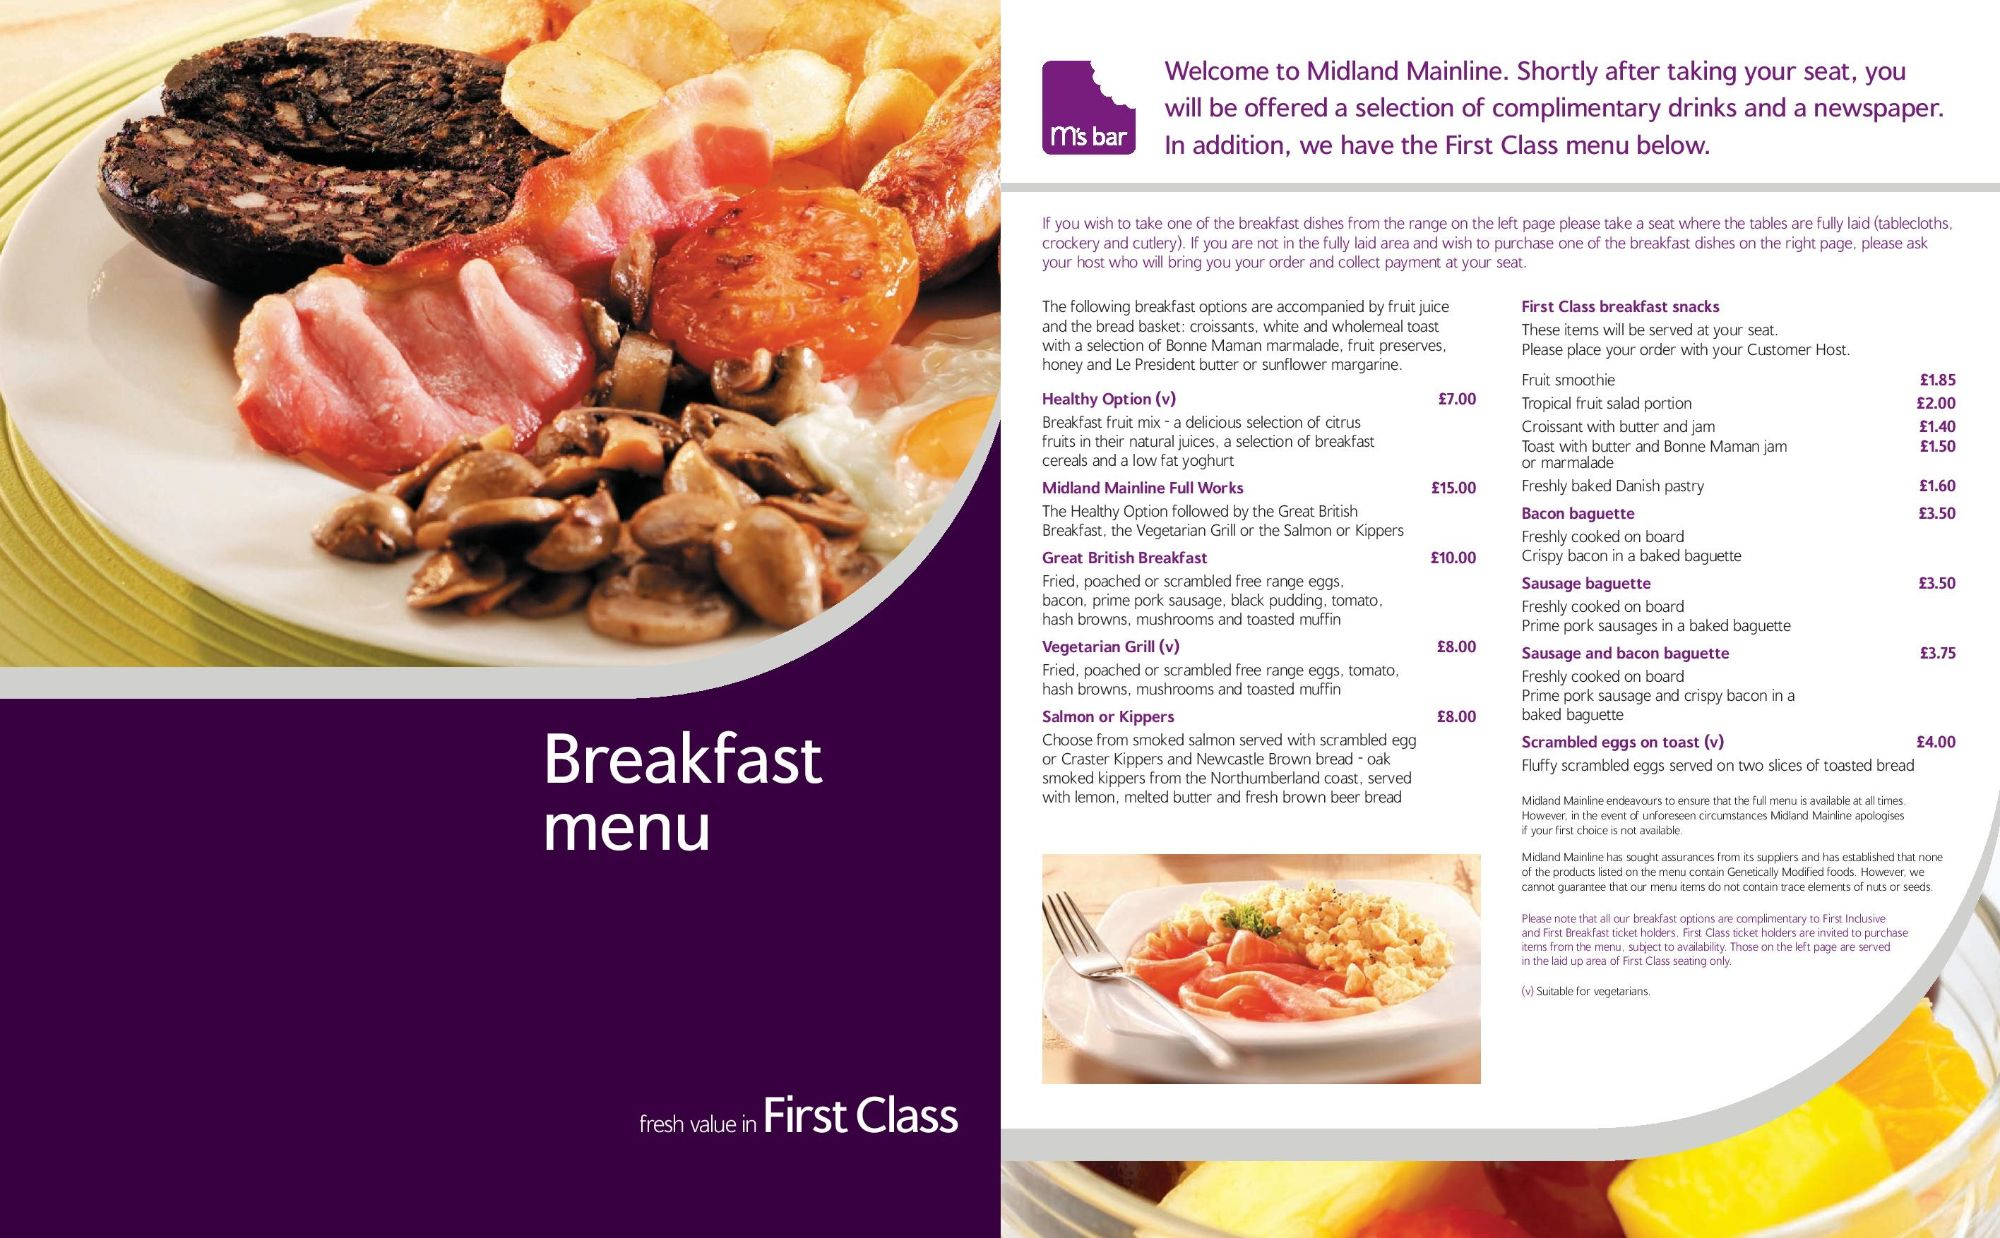 Image showing a sample of the Midland Mainline breakfast menu circa 2007.